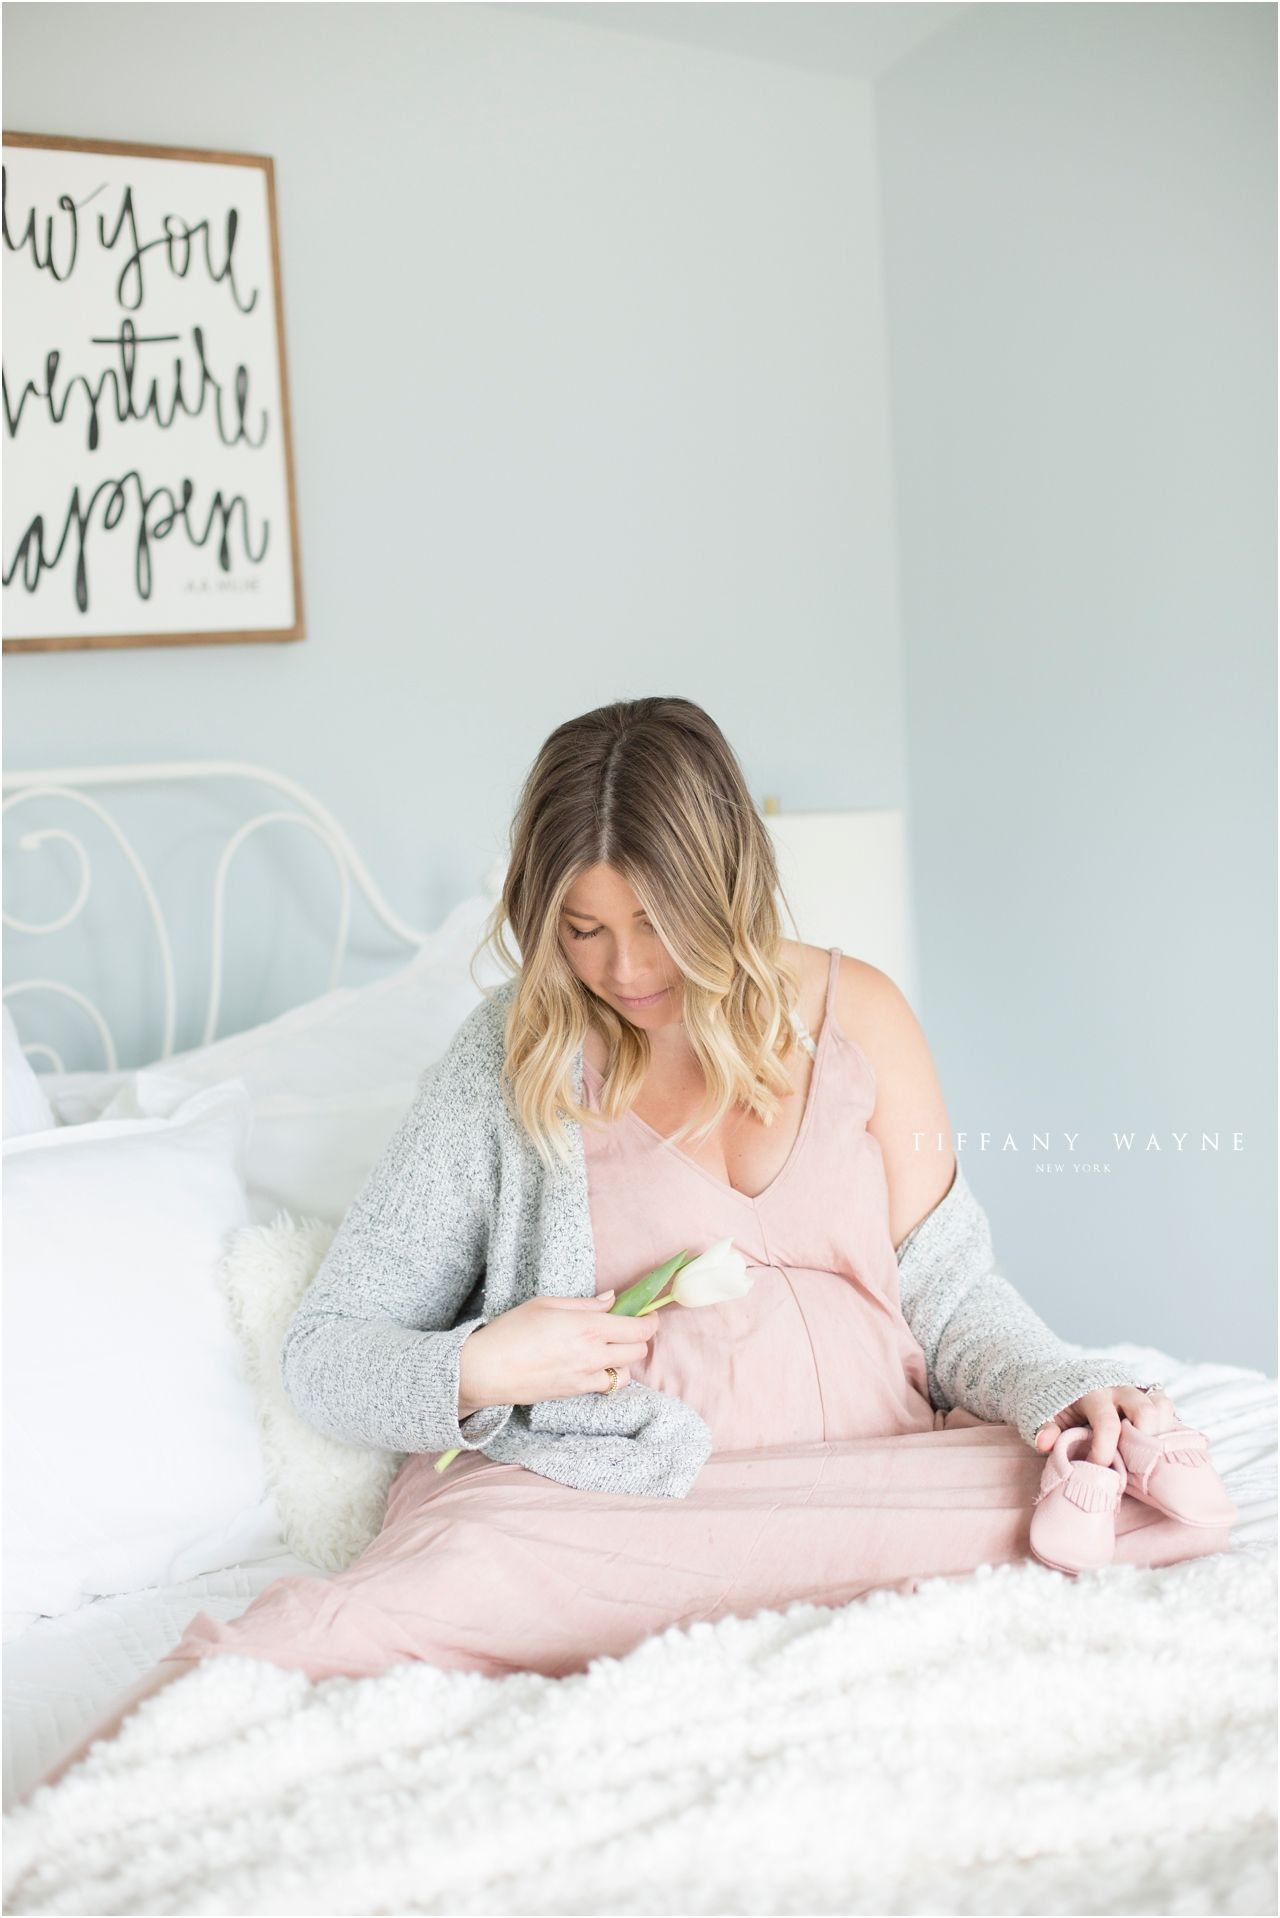 Maternity photo shoot ideas indoors at home | Maternity photos in ...